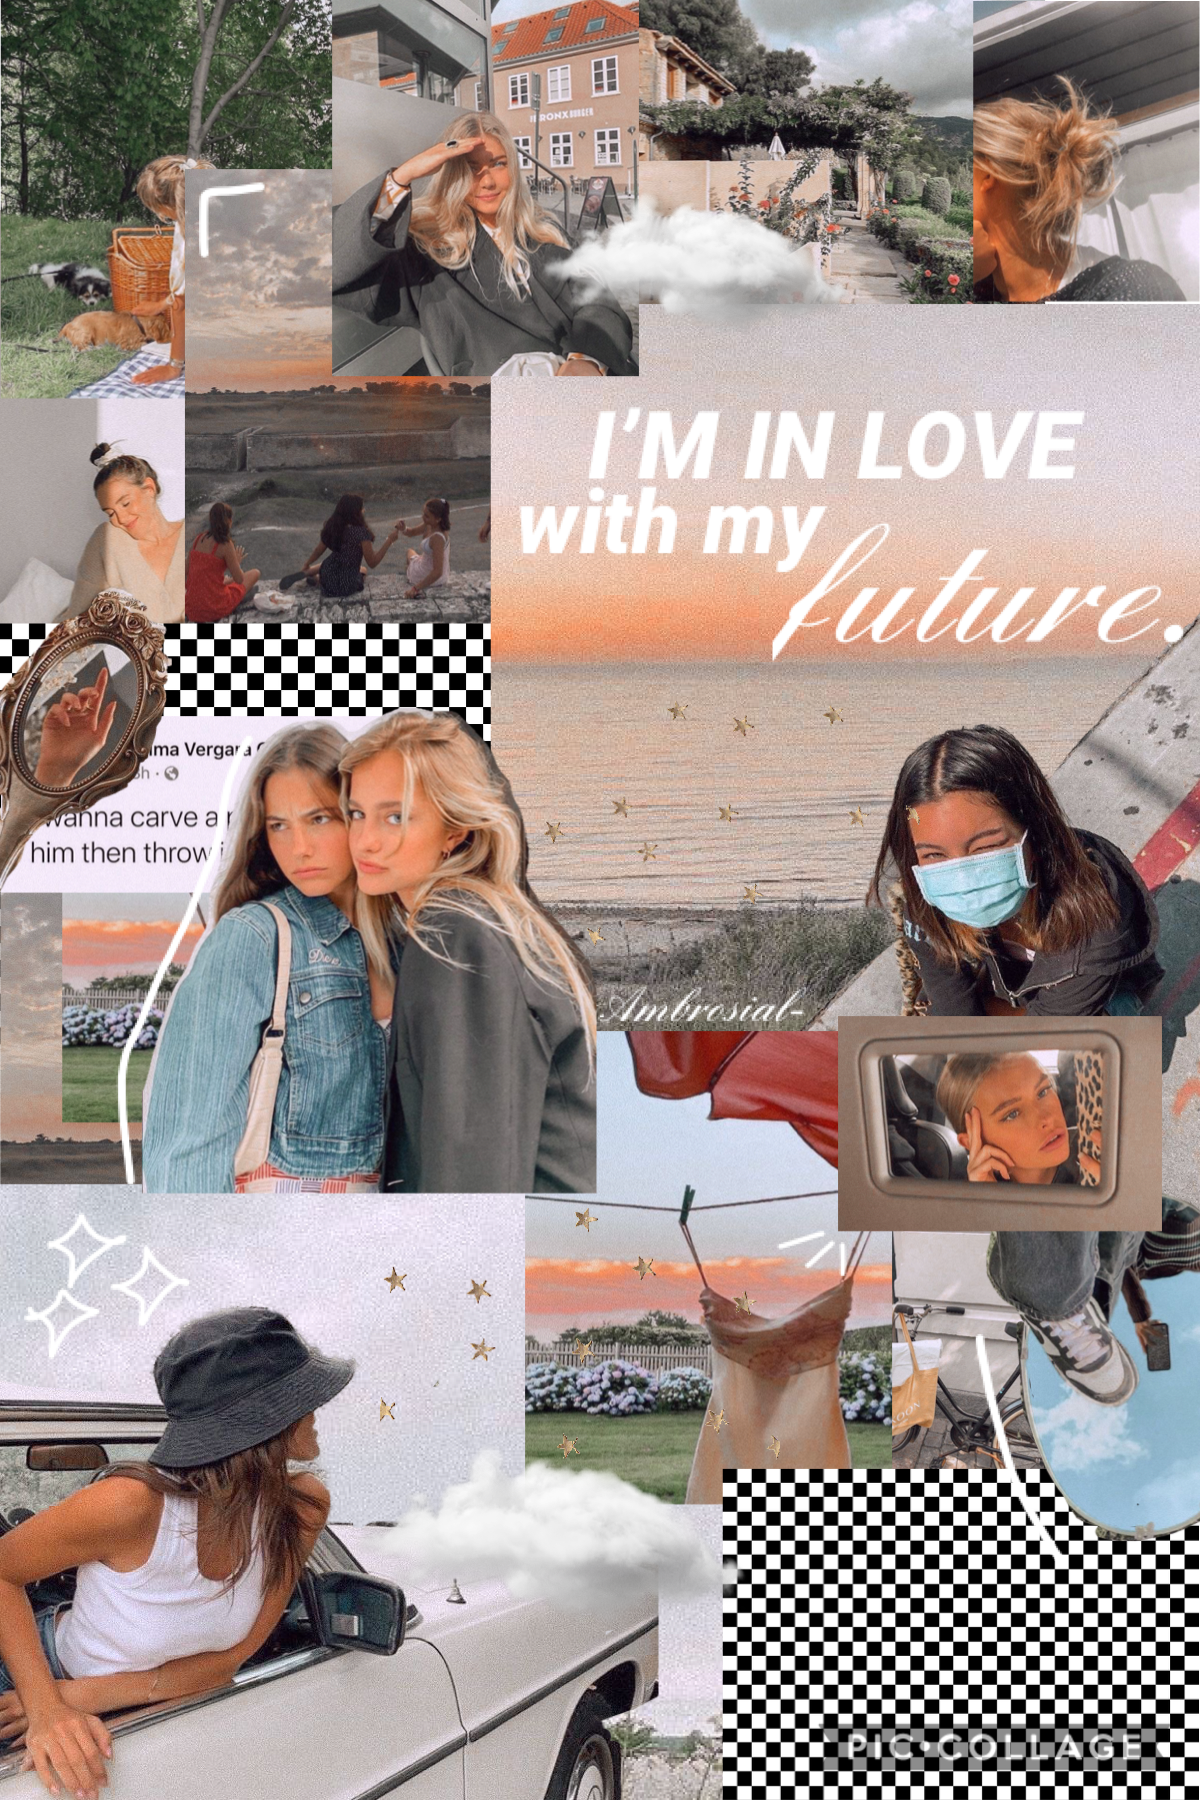 tap 🧡 25/9  hasfhth my collage got deleted 🥺 but I JUST FINISHED MY ASSESSMENTS FOR THE TERM AND I MADE THIS COLLAGE AND I'M HOPEFULLY GOING TO BE ACTIVE FOR AT LEAST THE NEXT TWO WEEKS!! 💗💗💗